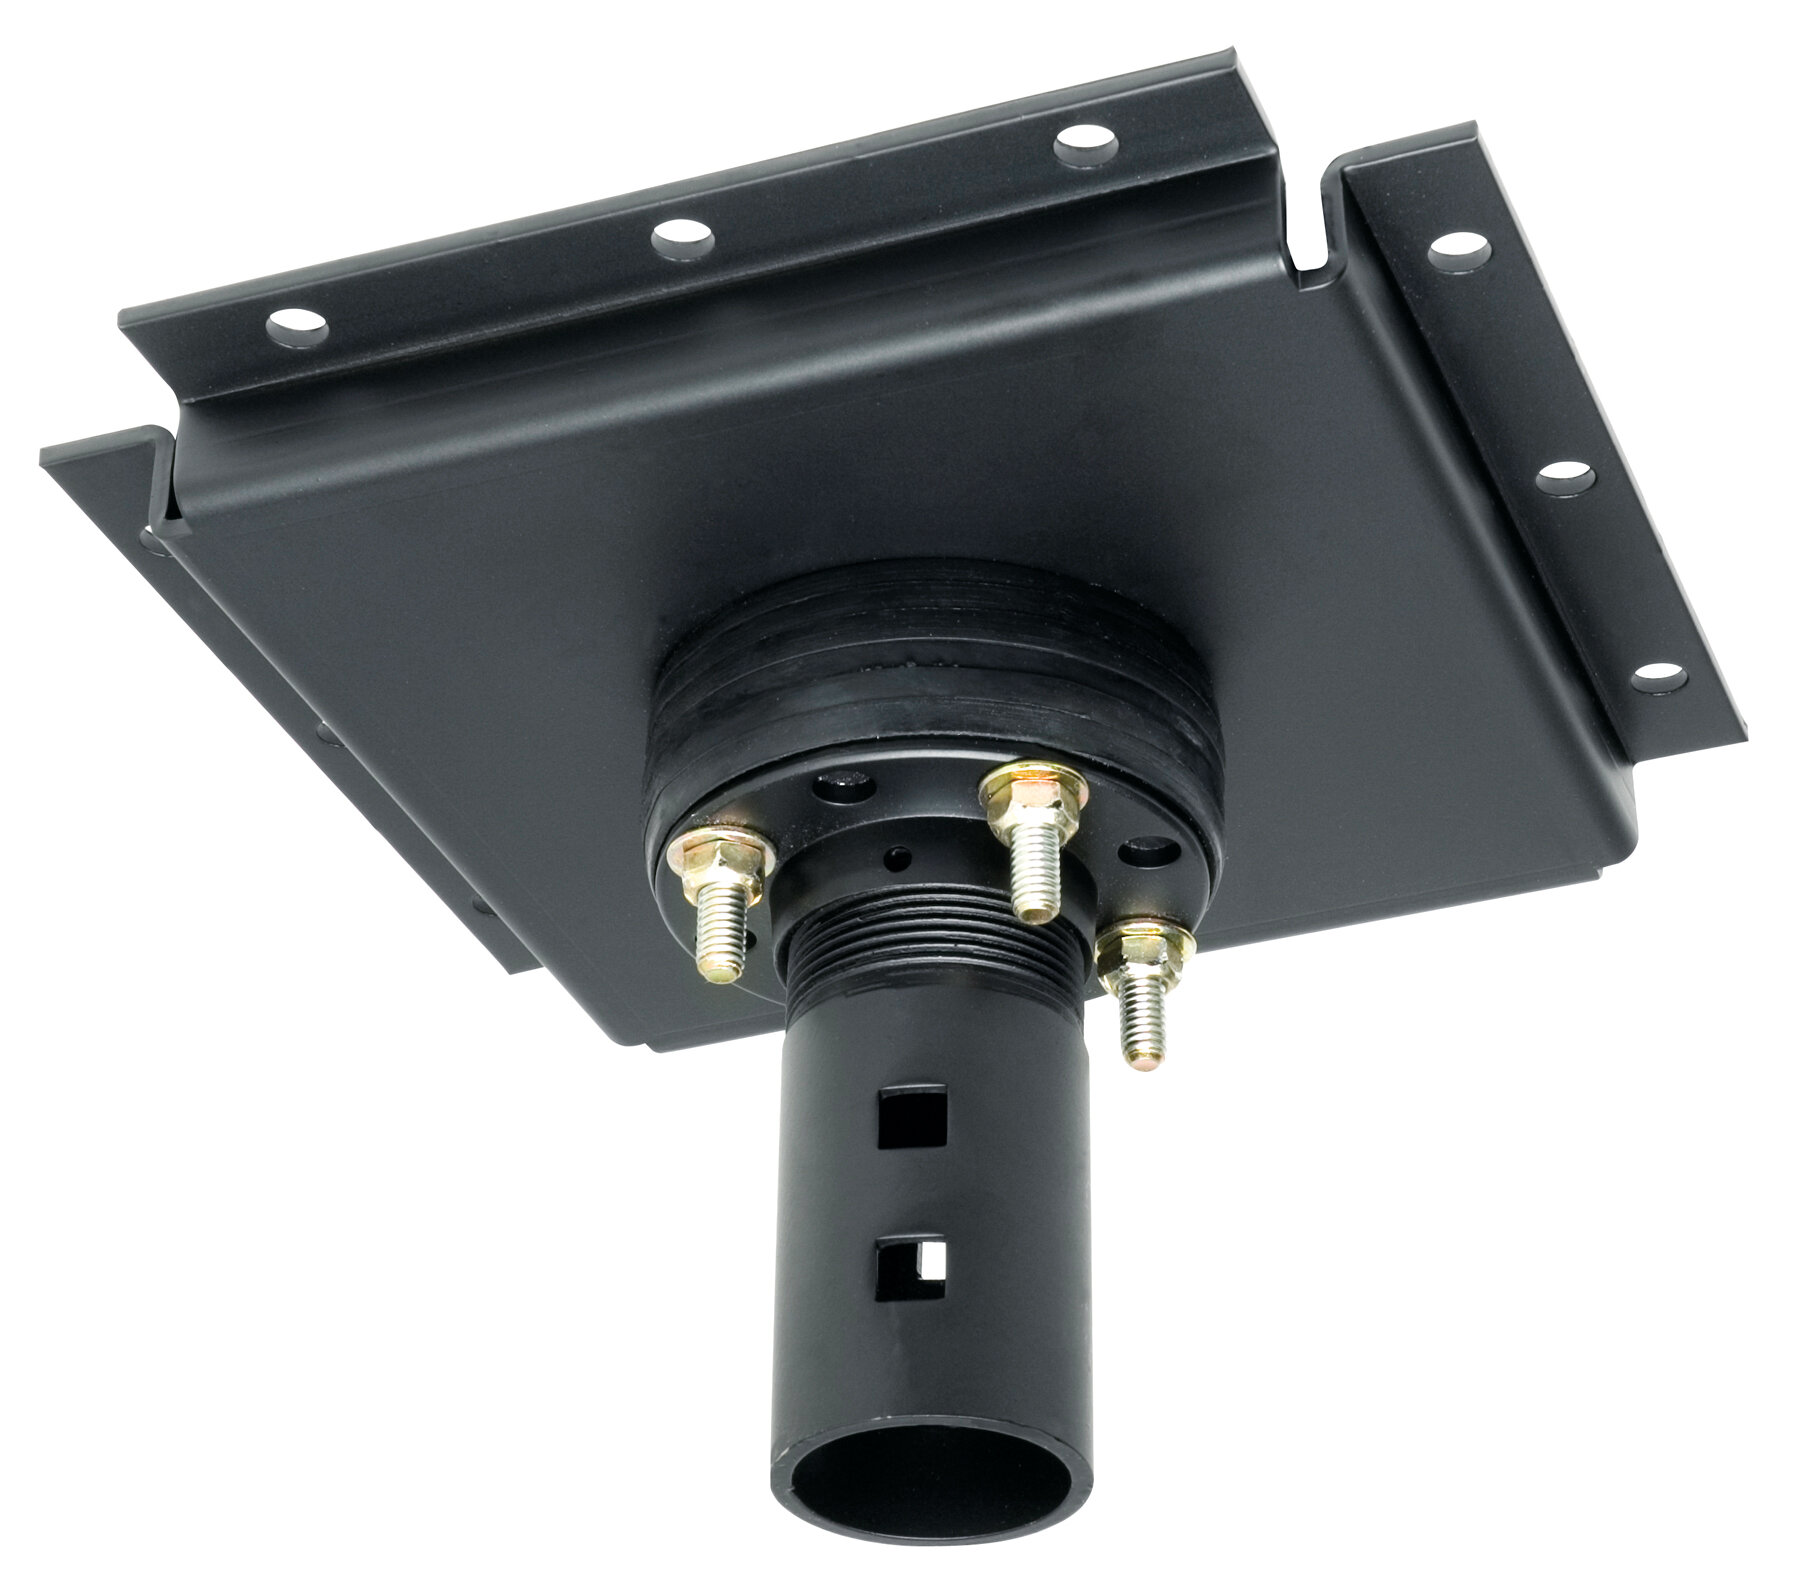 Peerless-AV Peerless TV and Projector Mounts and Parts Structural ...